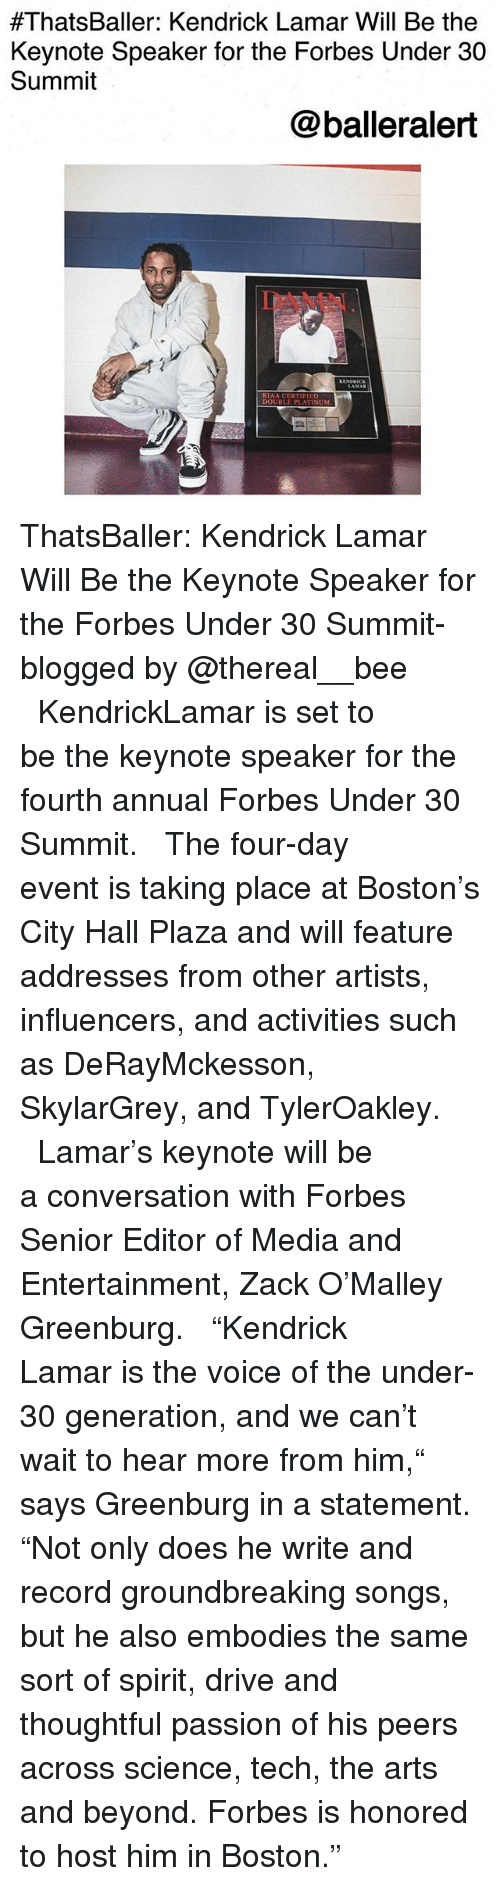 """city hall:  #ThatsBaller: Kendrick Lamar Will Be the  Keynote Speaker for the Forbes Under 30  Summit  @balleralert  DAMN  RIAA CERT  DOUBLE PLATINUM ThatsBaller: Kendrick Lamar Will Be the Keynote Speaker for the Forbes Under 30 Summit-blogged by @thereal__bee ⠀⠀⠀⠀⠀⠀⠀⠀⠀ ⠀⠀ KendrickLamar is set to be the keynote speaker for the fourth annual Forbes Under 30 Summit. ⠀⠀⠀⠀⠀⠀⠀⠀⠀ ⠀⠀ The four-day event is taking place at Boston's City Hall Plaza and will feature addresses from other artists, influencers, and activities such as DeRayMckesson, SkylarGrey, and TylerOakley. ⠀⠀⠀⠀⠀⠀⠀⠀⠀ ⠀⠀ Lamar's keynote will be a conversation with Forbes Senior Editor of Media and Entertainment, Zack O'Malley Greenburg. ⠀⠀⠀⠀⠀⠀⠀⠀⠀ ⠀⠀ """"Kendrick Lamar is the voice of the under-30 generation, and we can't wait to hear more from him,"""" says Greenburg in a statement. """"Not only does he write and record groundbreaking songs, but he also embodies the same sort of spirit, drive and thoughtful passion of his peers across science, tech, the arts and beyond. Forbes is honored to host him in Boston."""""""